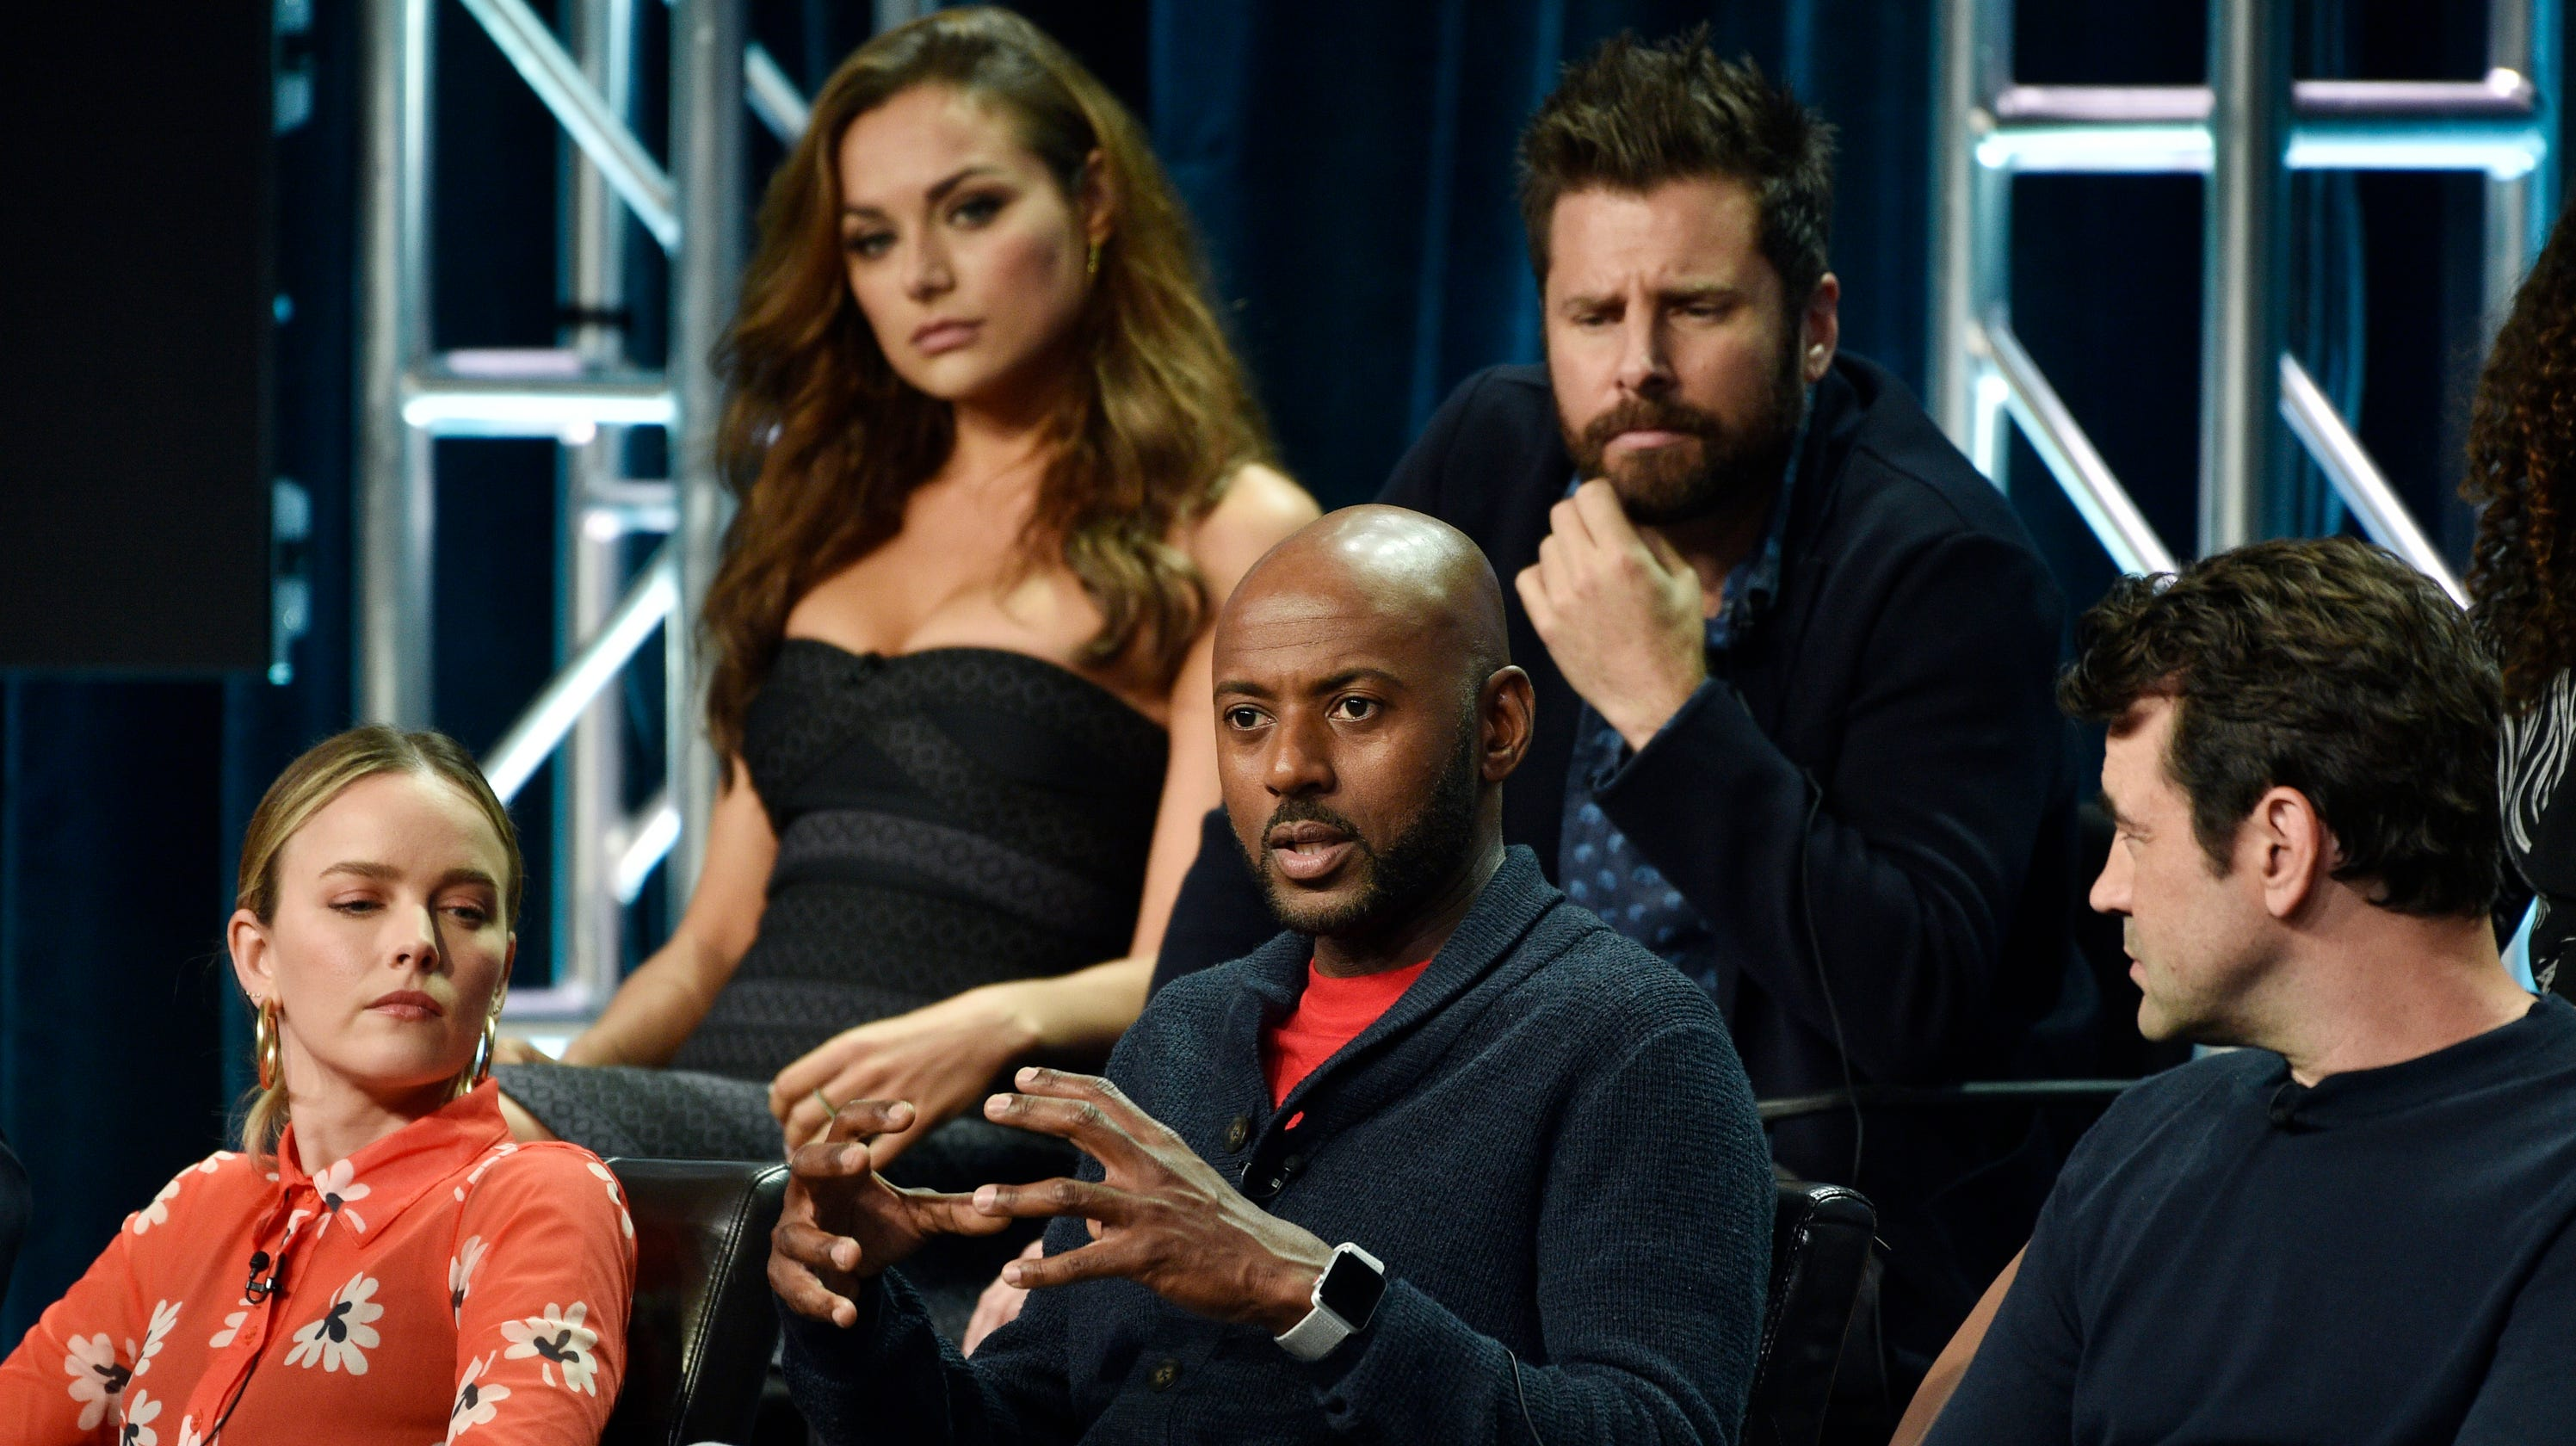 Why do guys avoid emotions? ABC offers drama 'A Million